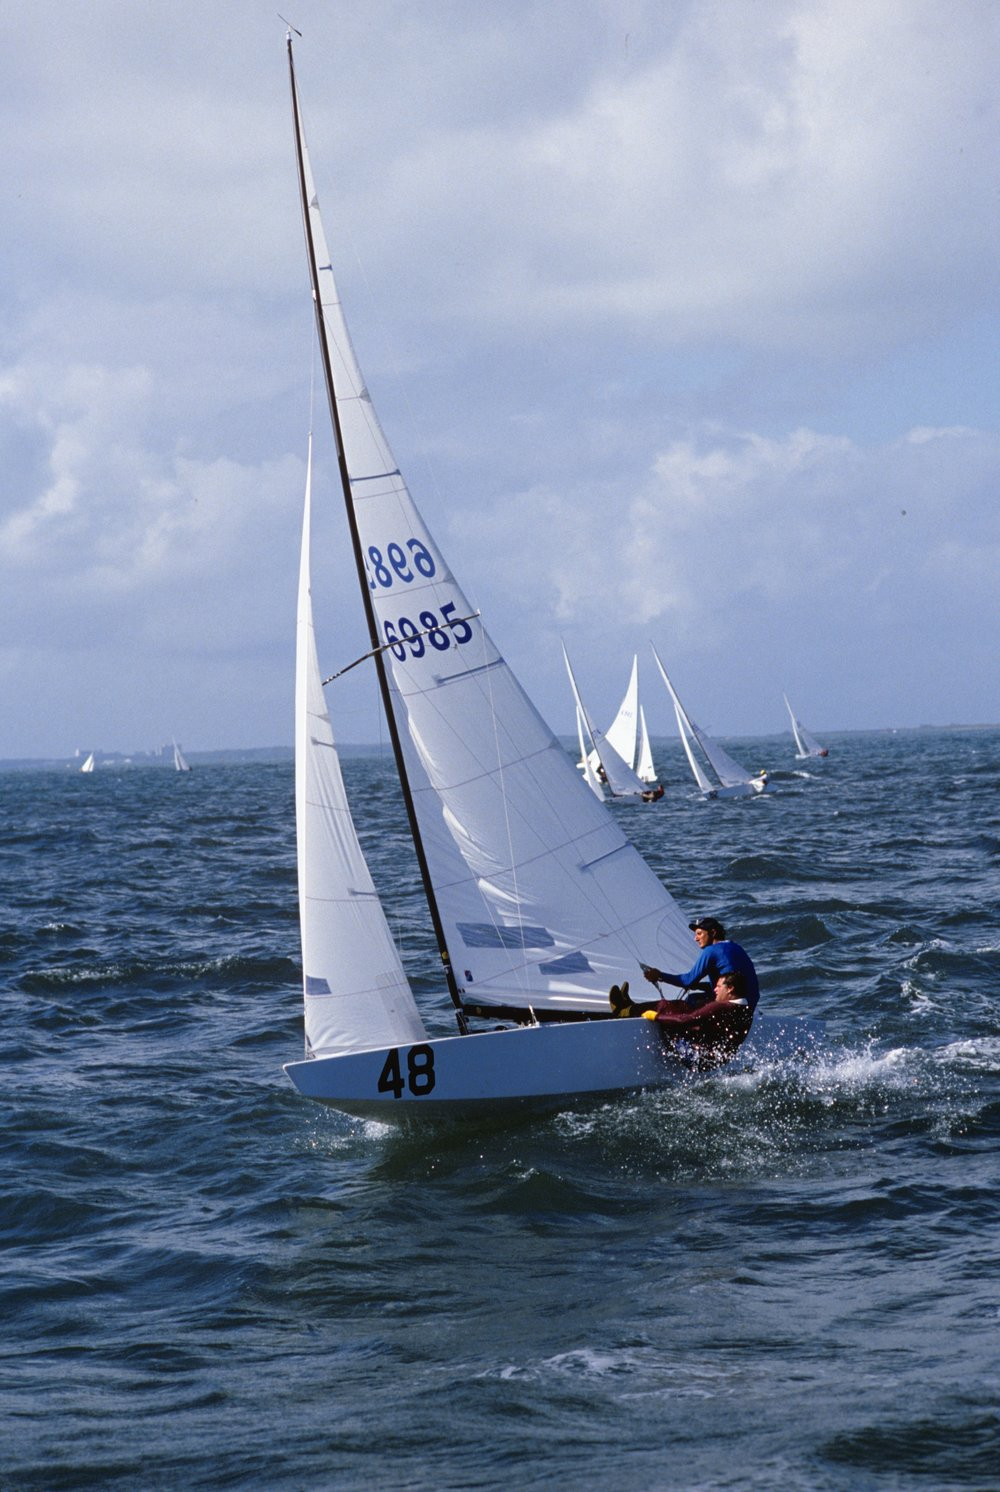 GREG DOLAN AND ANDREW MENKART LEADING IN RACE IV OF THE 1985 STAR WORLD CHAMPIONSHIPS IN NASSAU